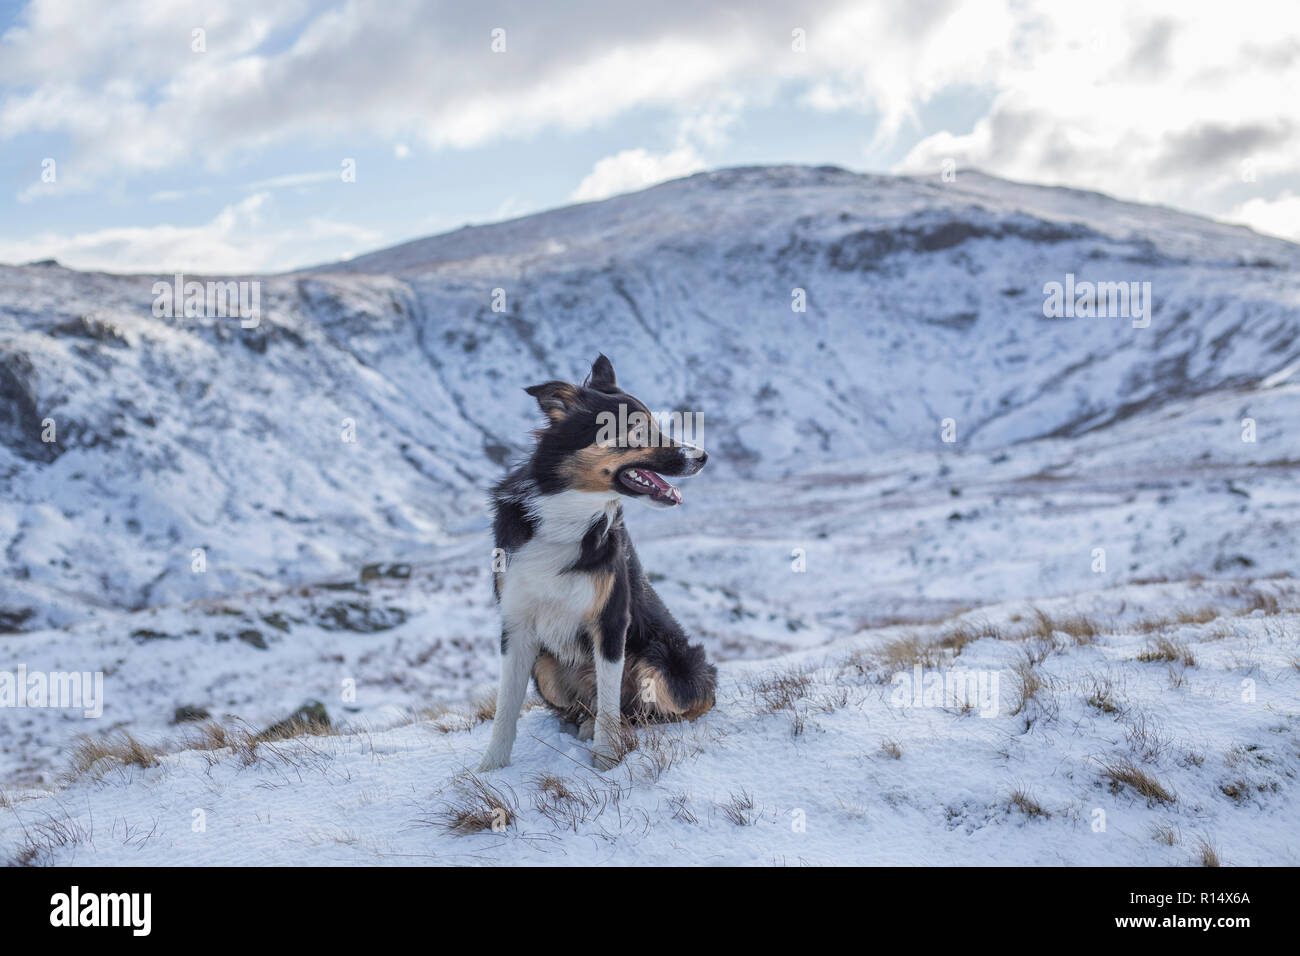 A tricoloured border collie surrounded by snow covered mountains, looking away from the camera as if searching the landscape for something. - Stock Image